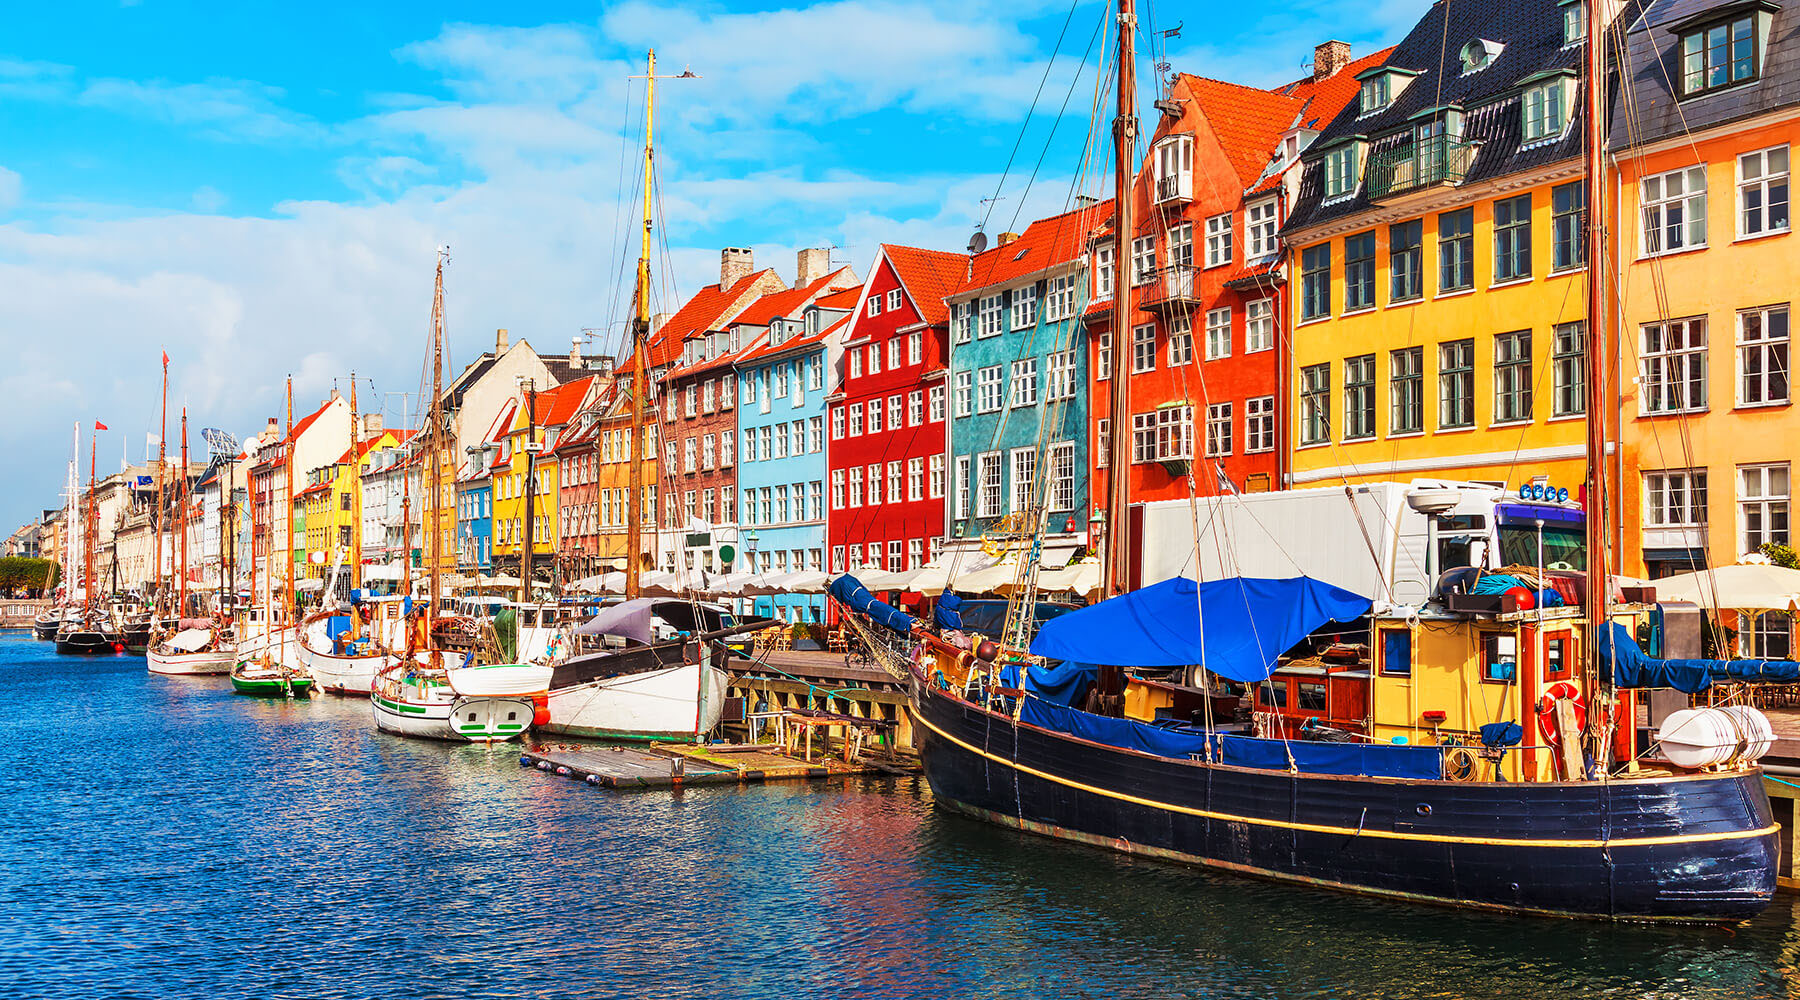 11 NIGHT CITIES OF NORTHERN EUROPE